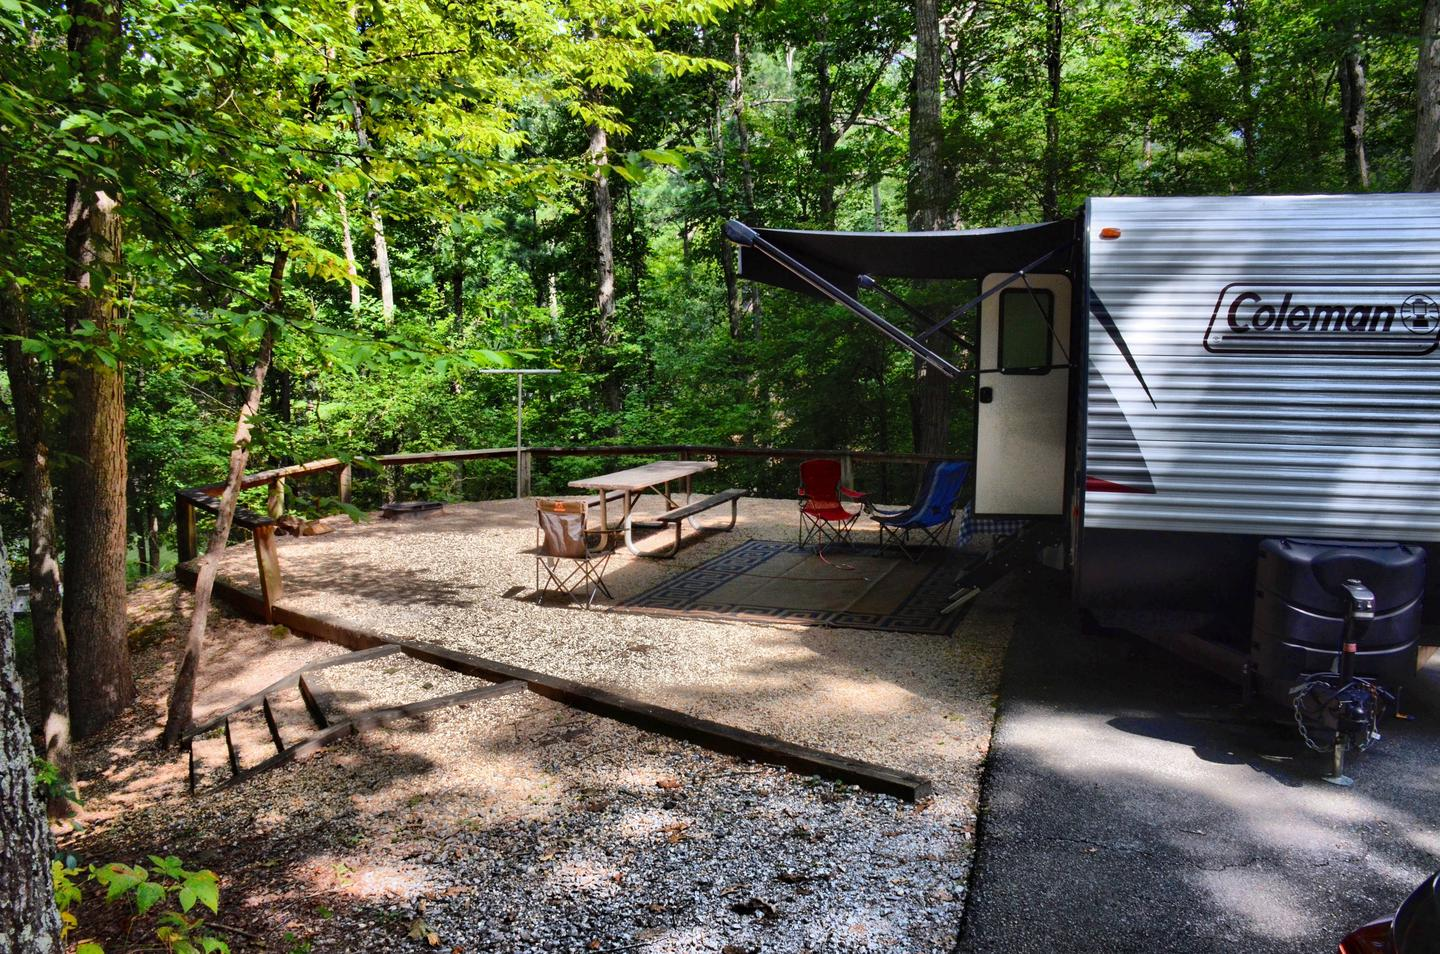 Awning-side clearance, campsite view.McKinney Campground, campsite 78.